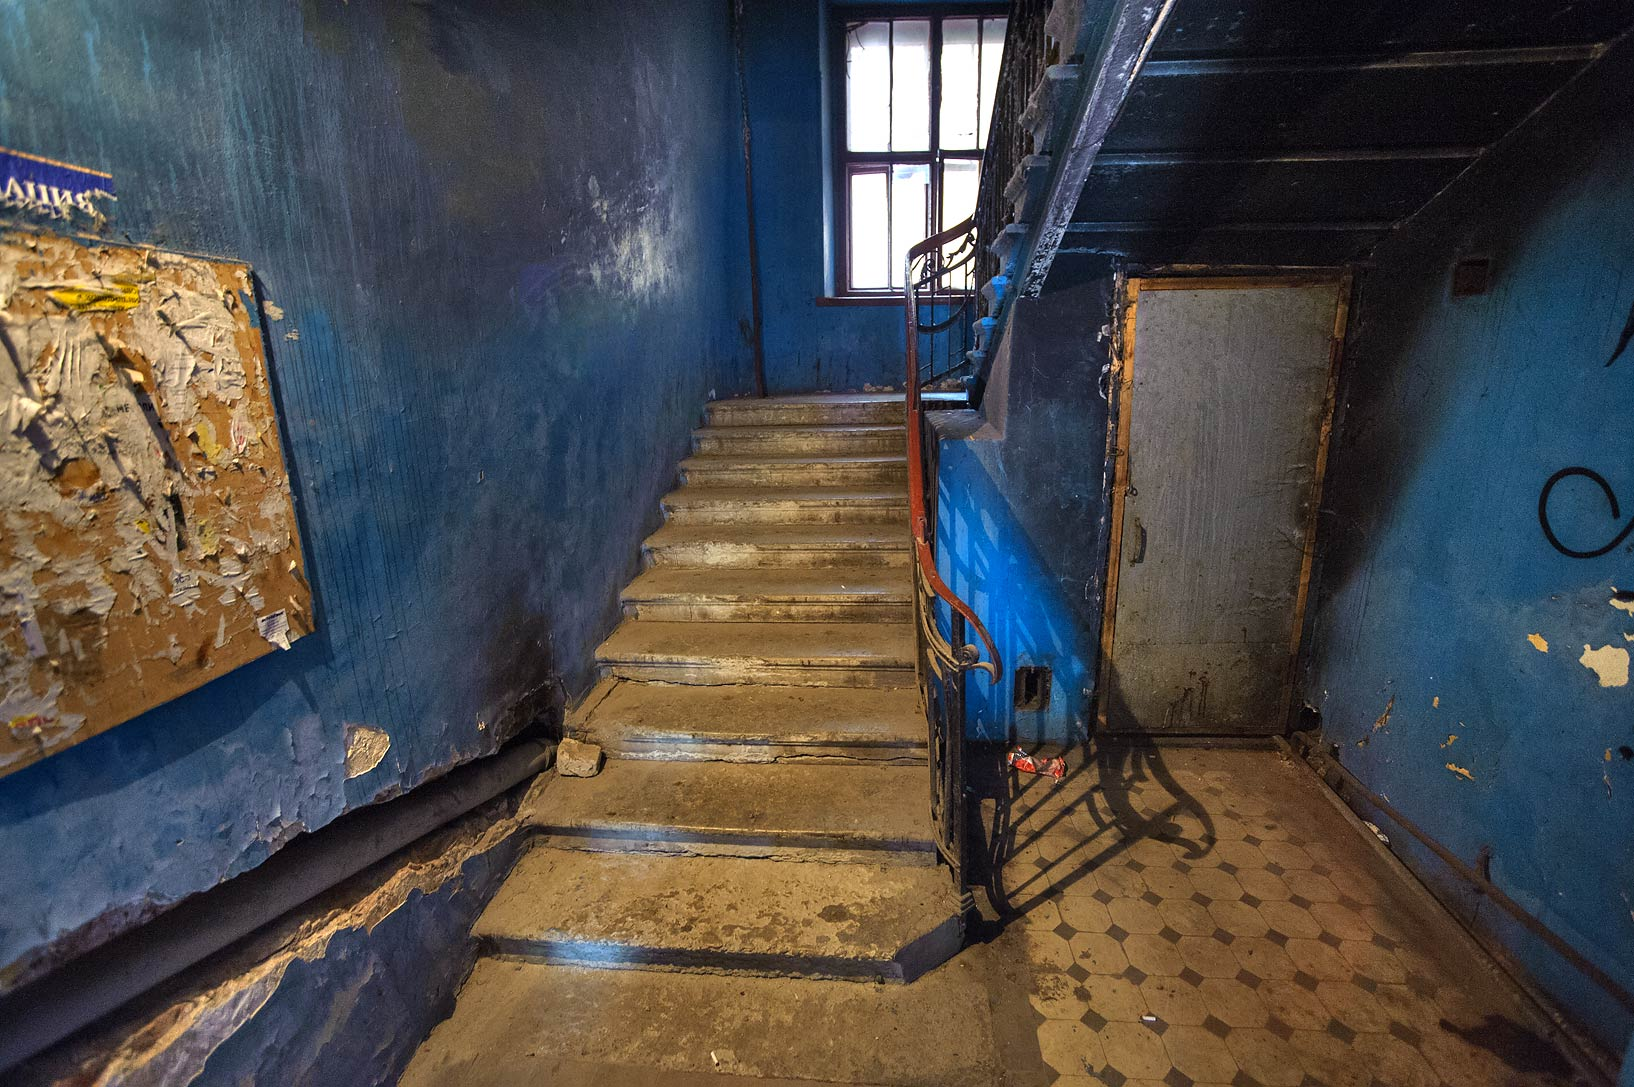 Blue staircase near Novaya Gollandiya (New Holland). St.Petersburg, Russia